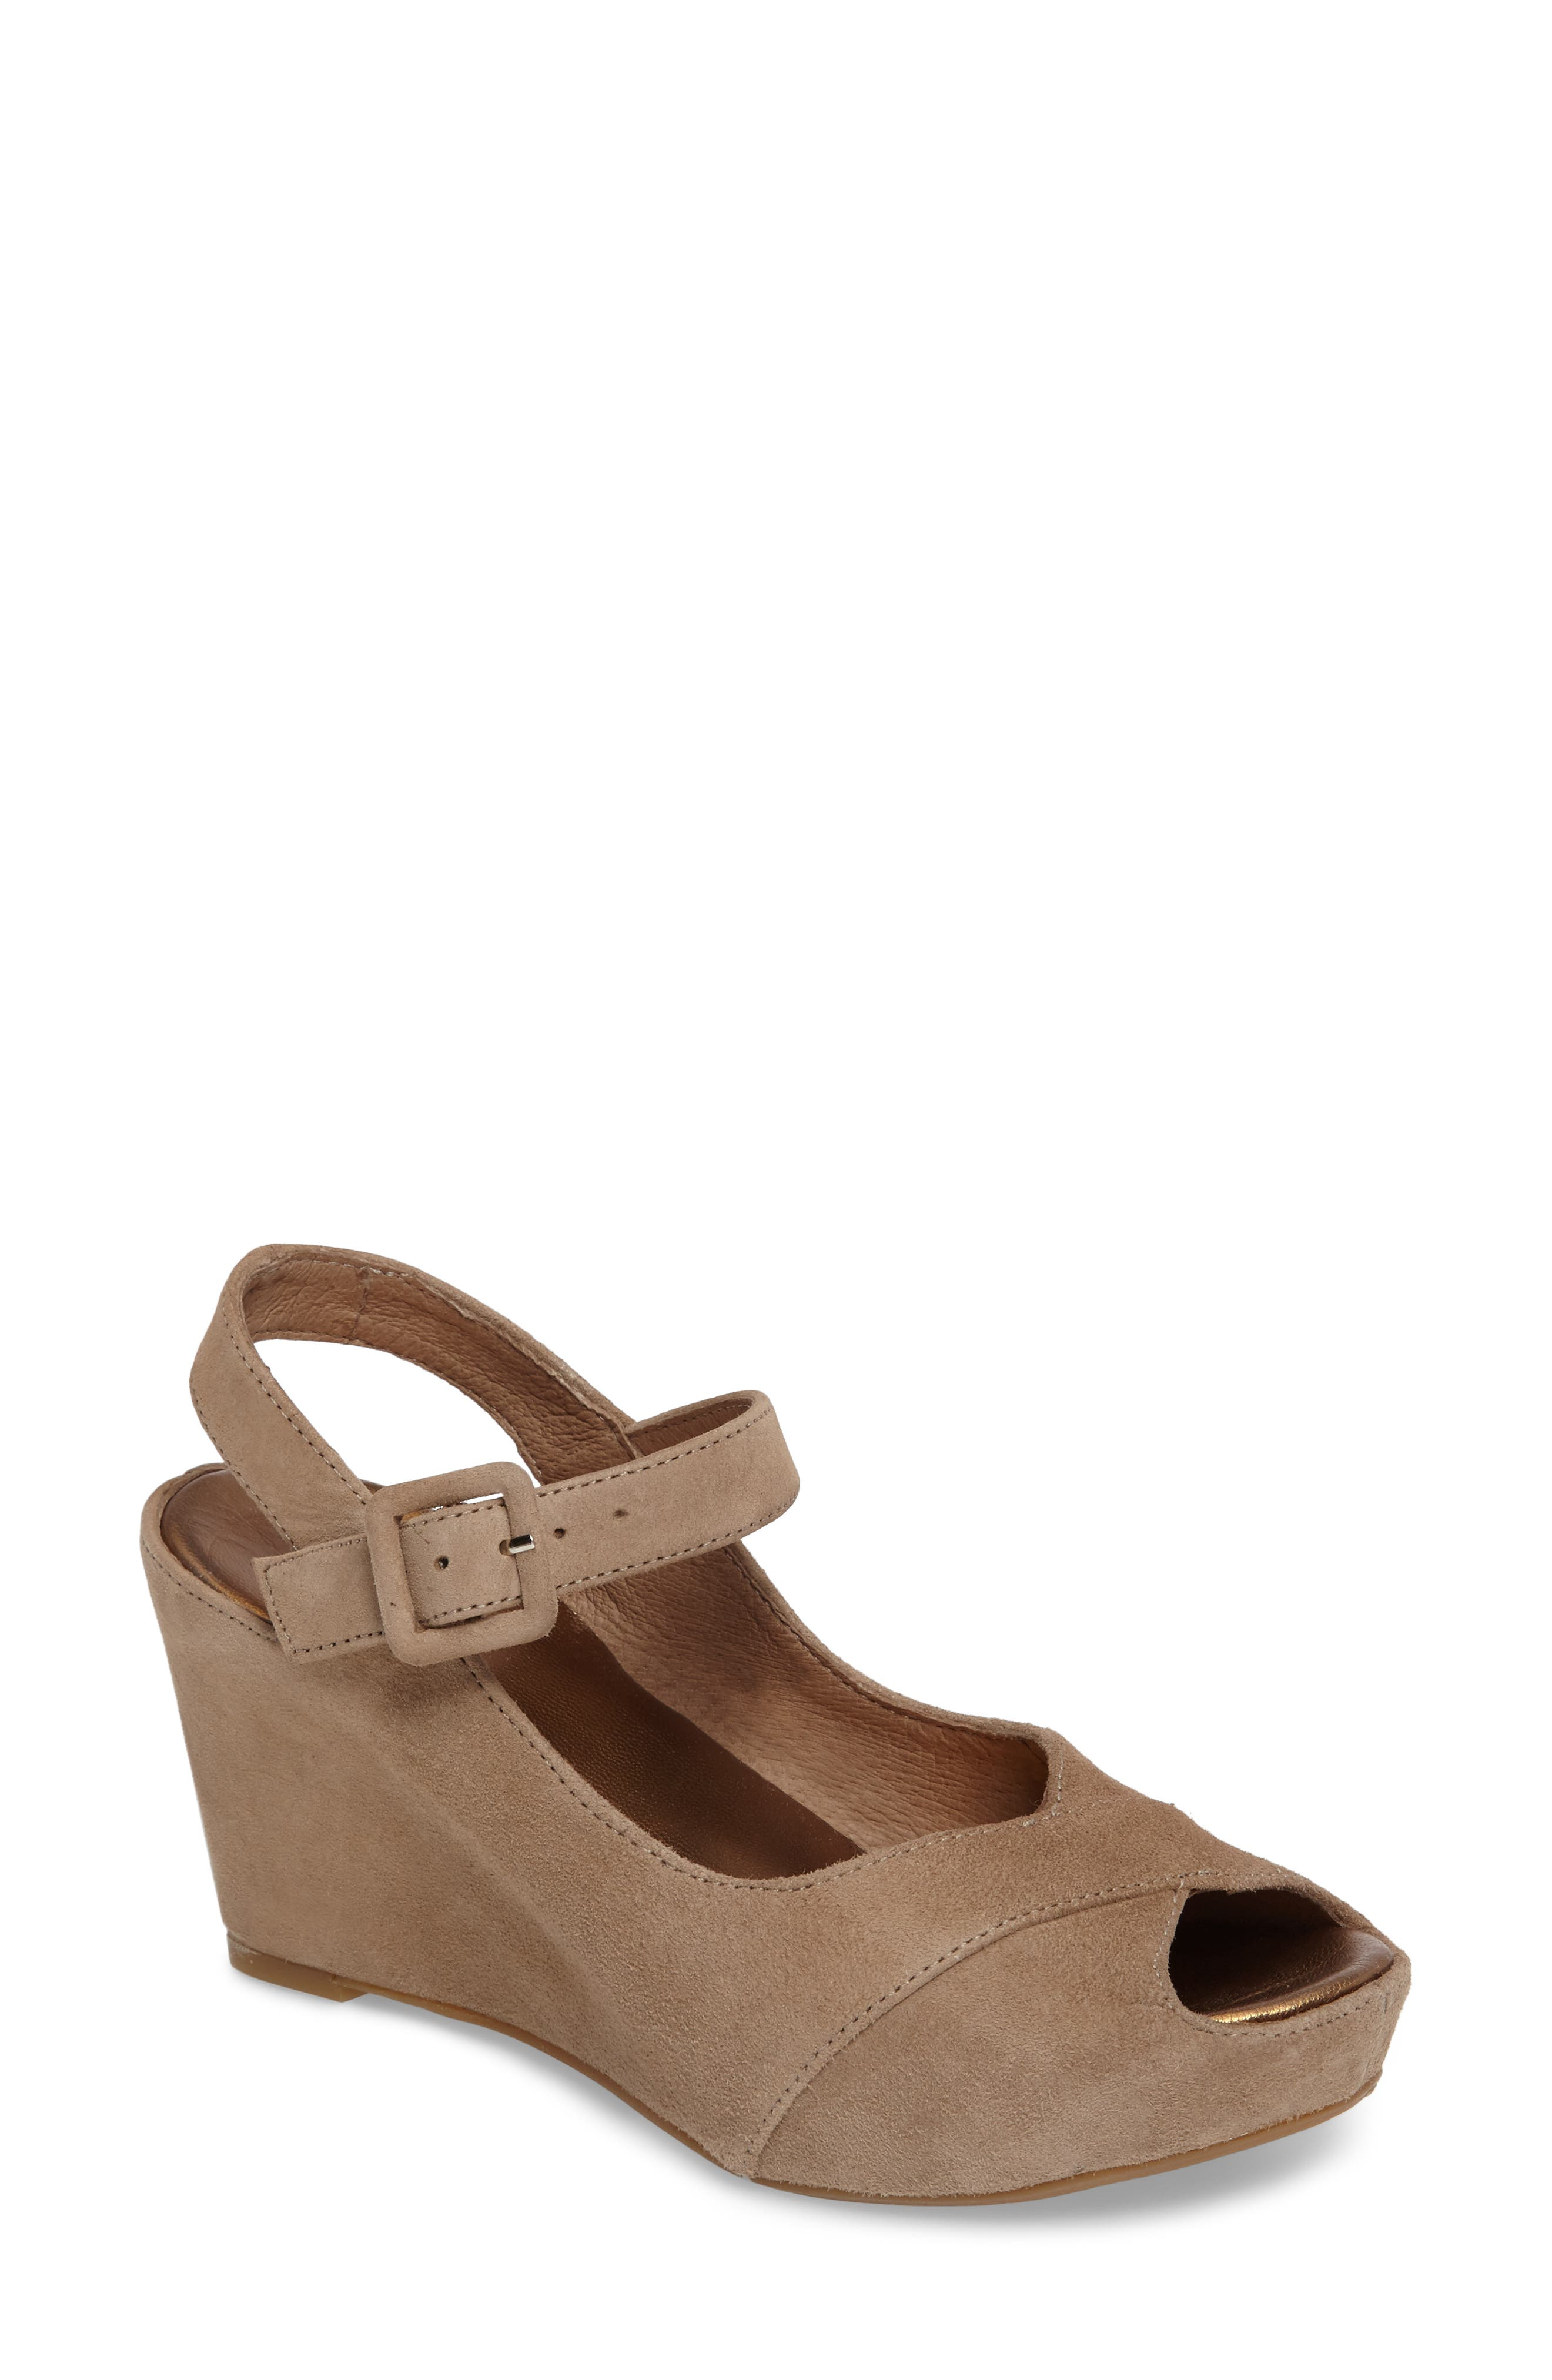 Johnston & Murphy Tara Platform Wedge Sandal (Women)